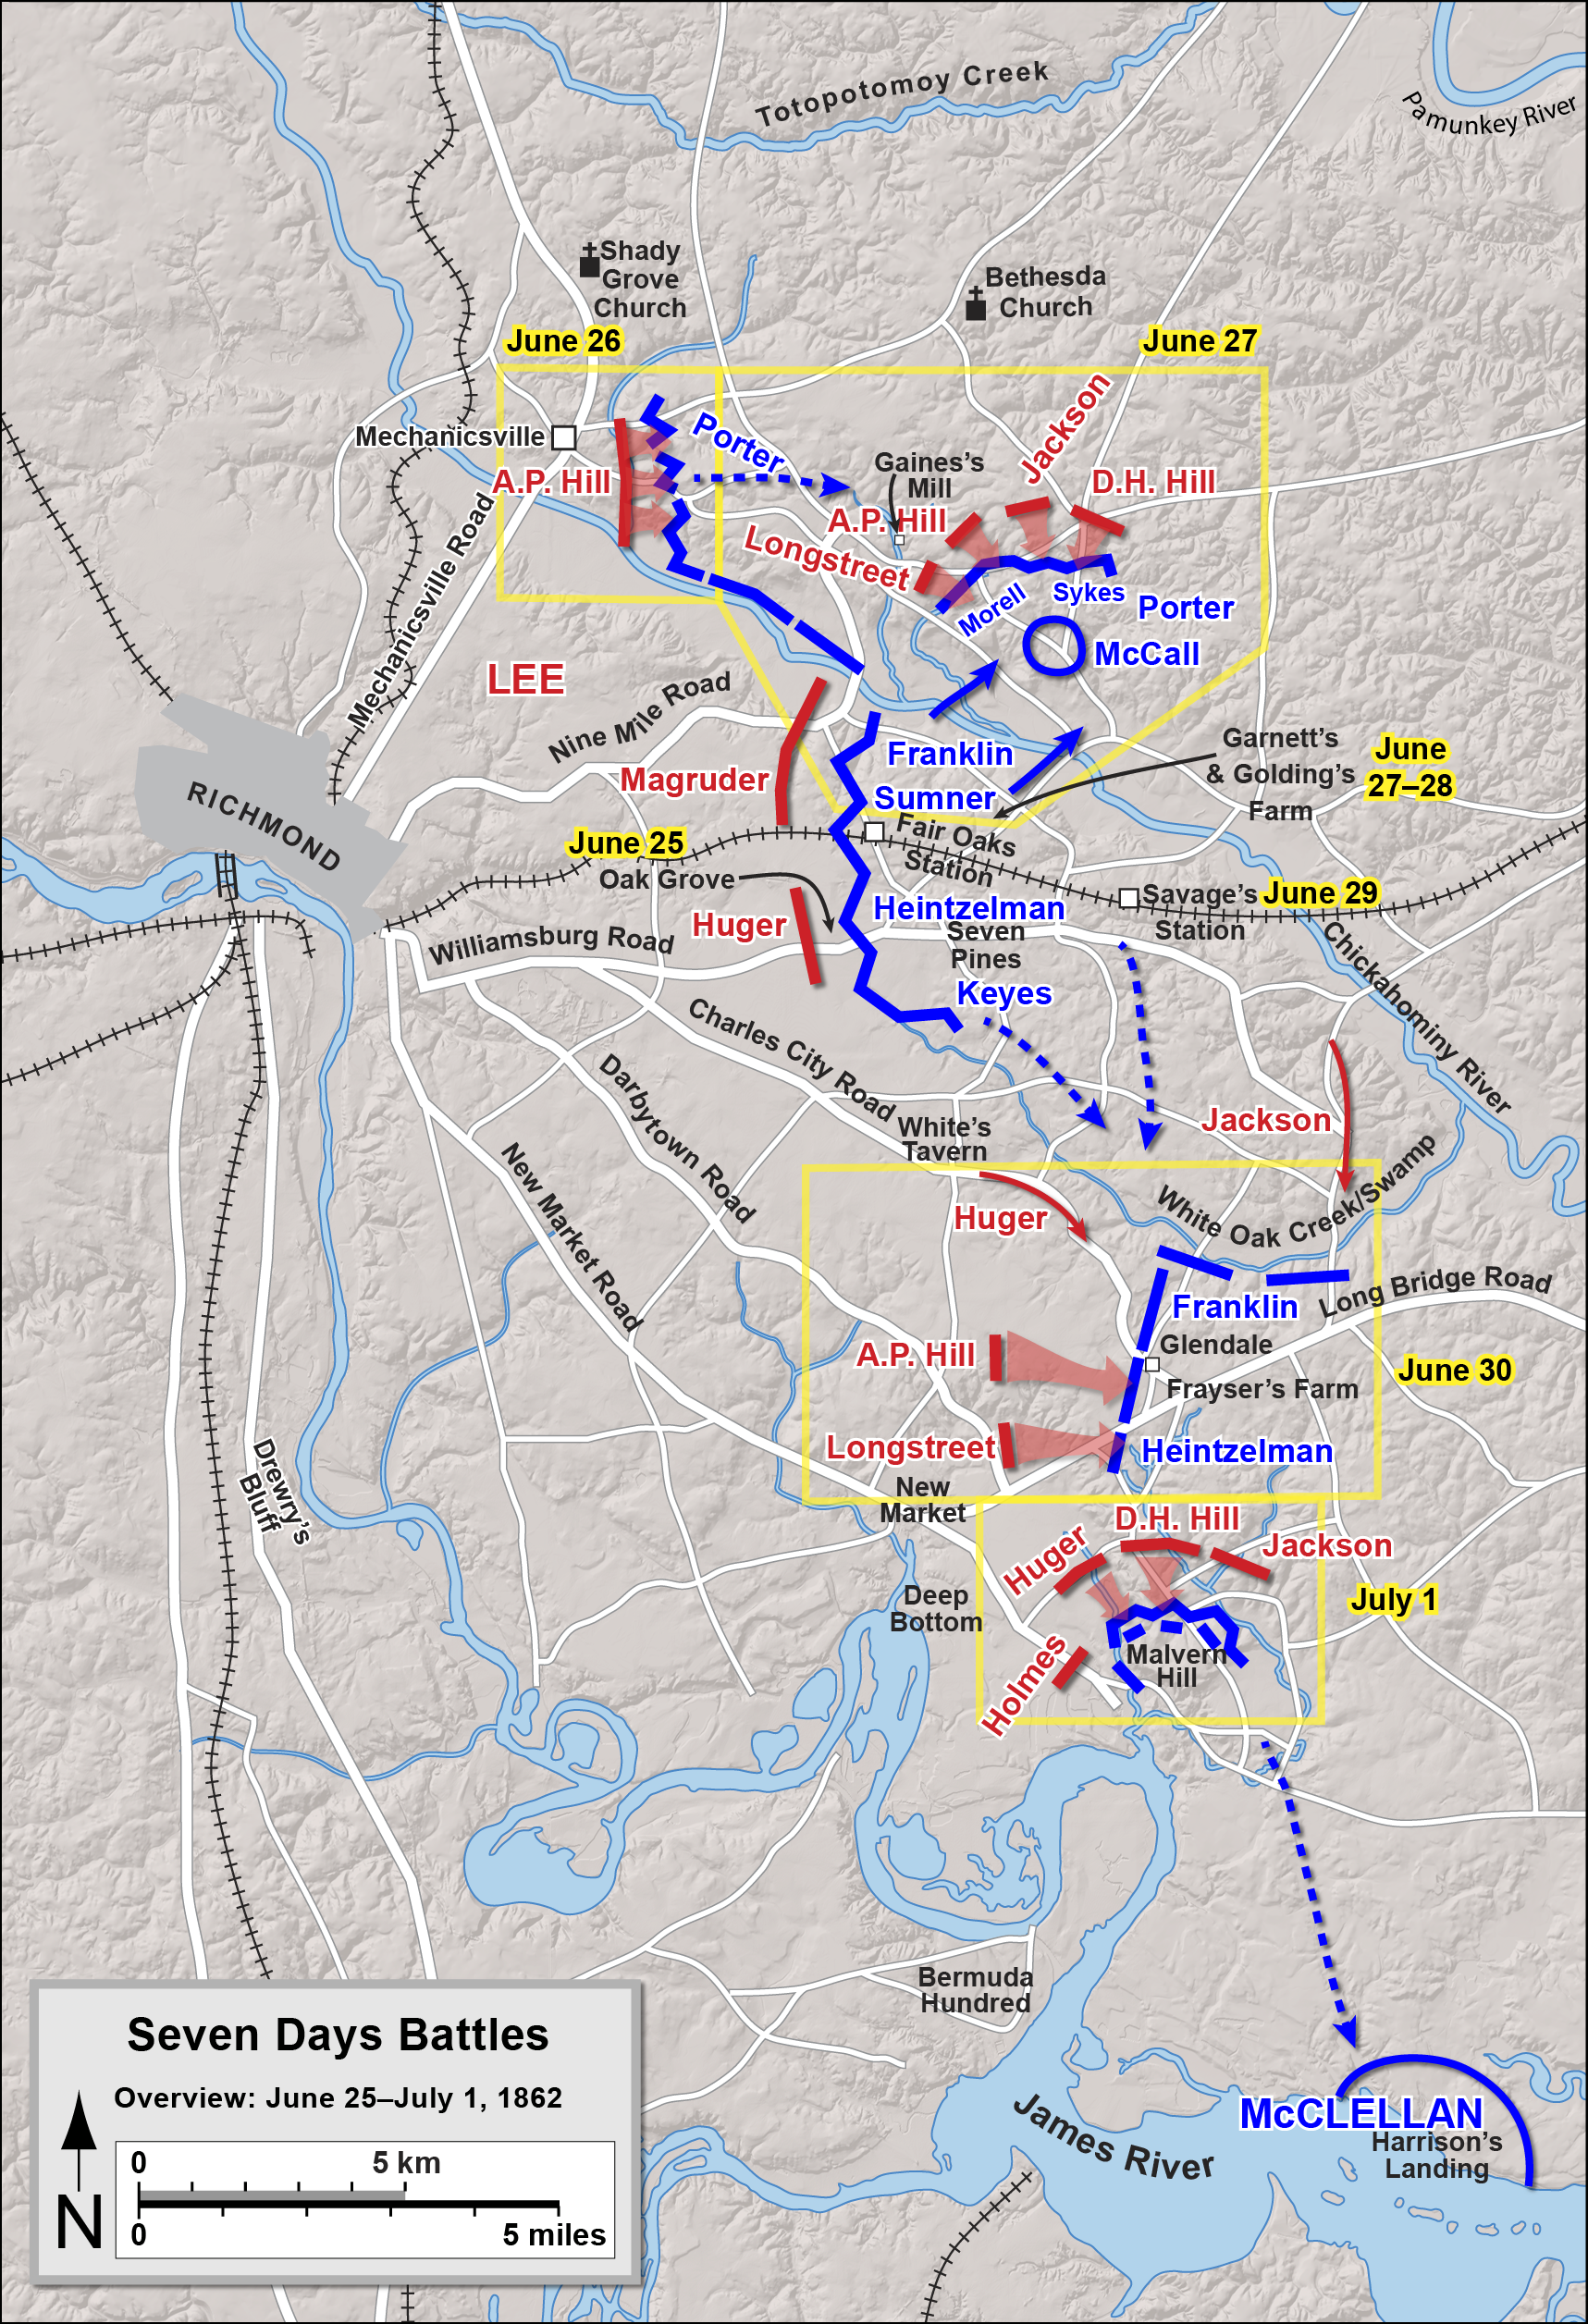 Map of the Seven Days Battles